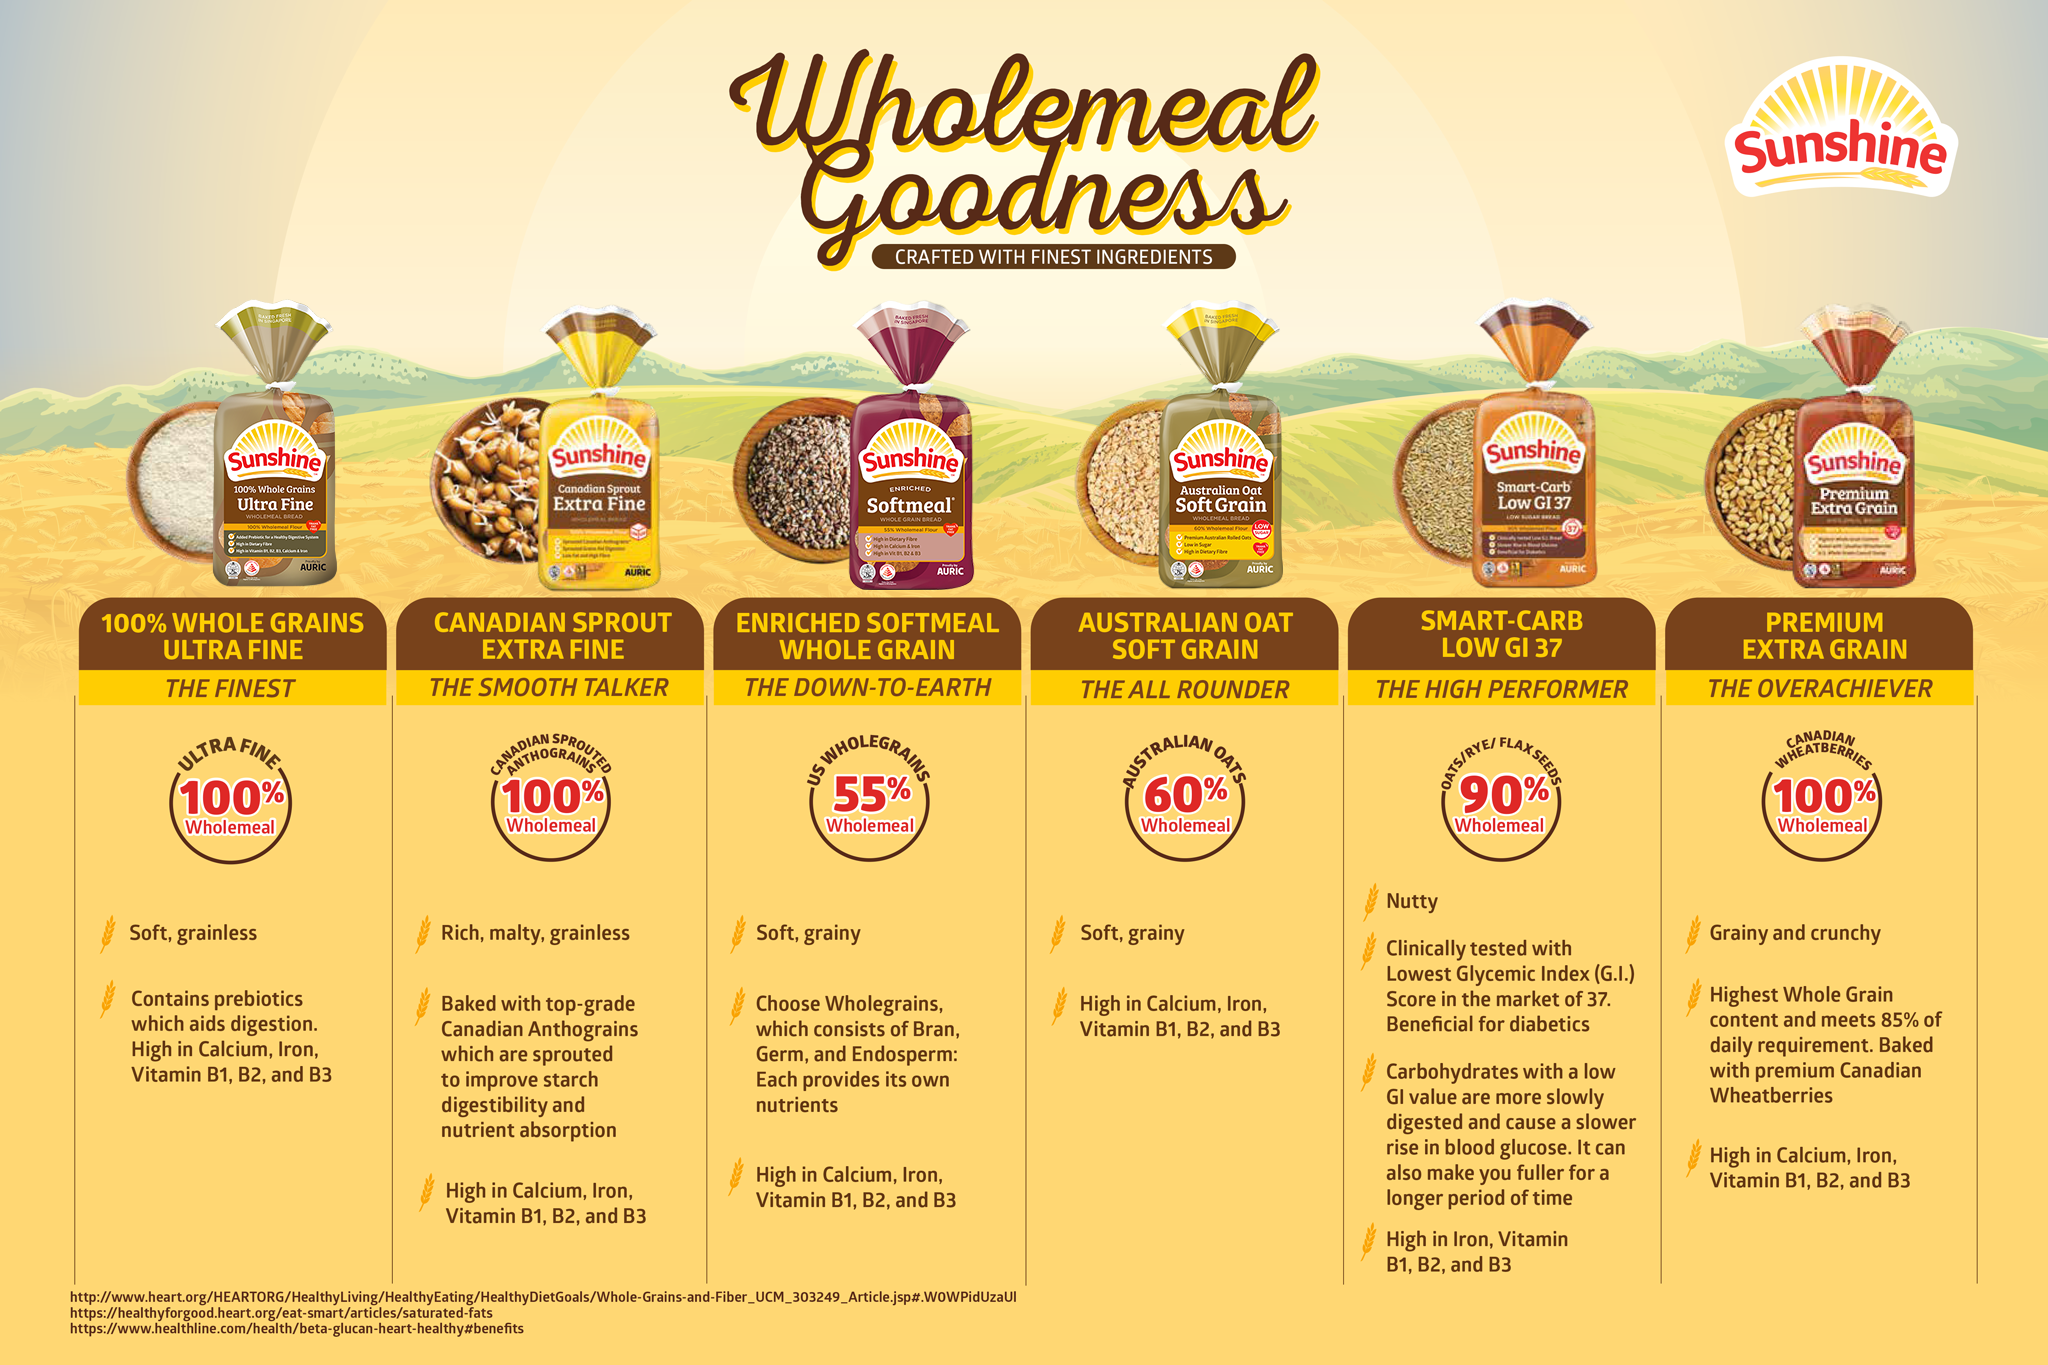 Taste the Wholemeal Goodness with Sunshine Bakeries